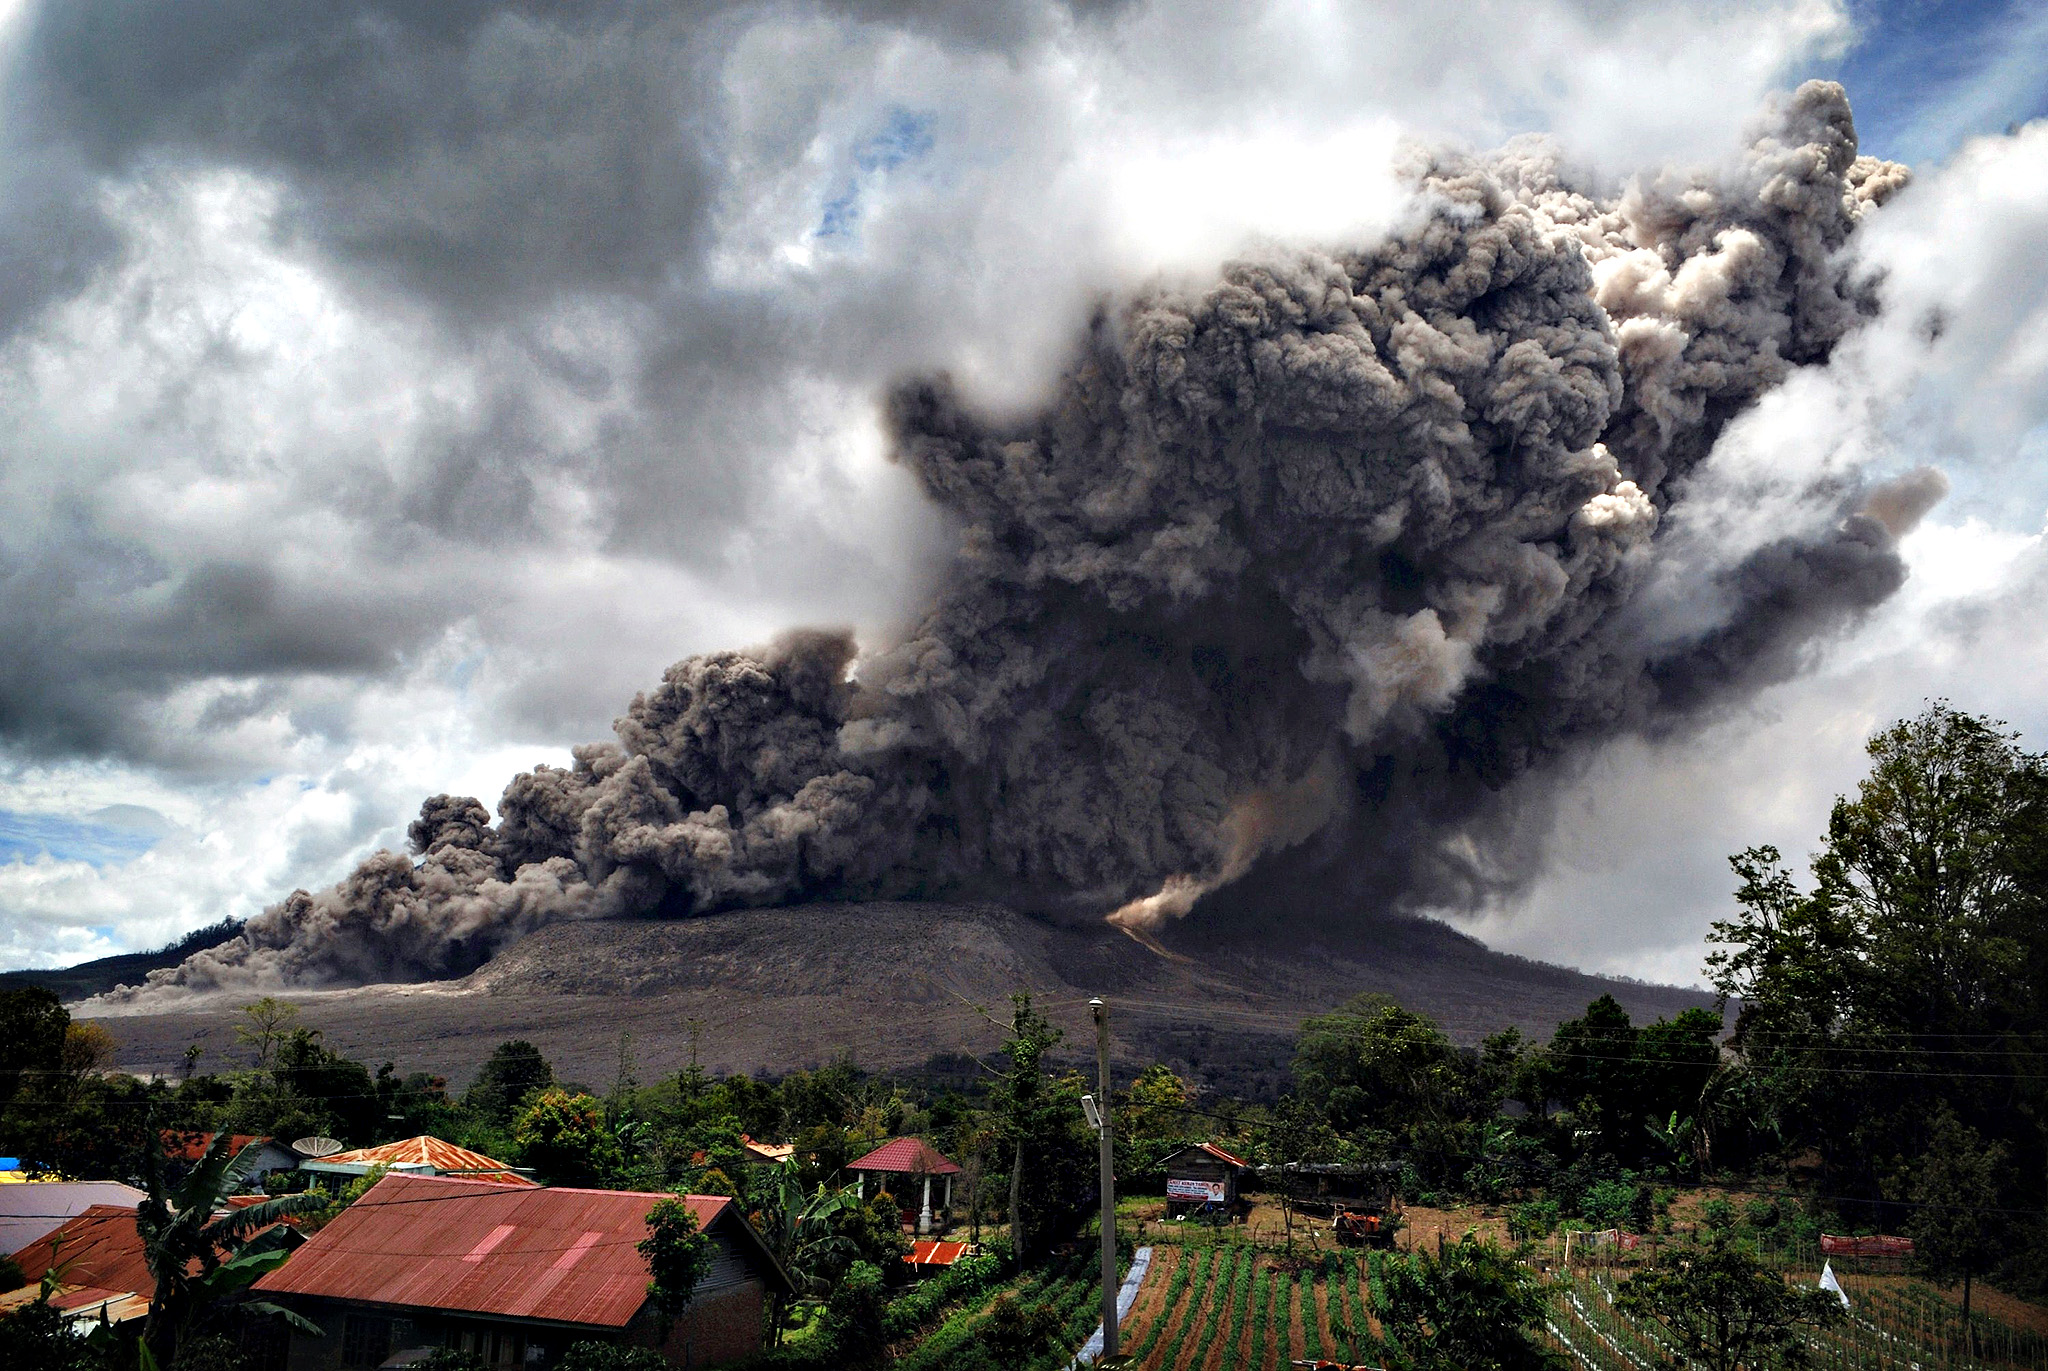 Dark giant ash clouds rise from the crater of Mount Sinabung volcano during an eruption on October 8, 2014, as seen from Karo district located on Indonesia's Sumatra island, following an earlier eruption on October 5, 2014.According to authorities hundreds of residents are still housed at evacuation centers as authorities maintains off limit danger zone around Mount Sinabung located in Indonesia's Sumatra island following deadly eruption in early February that killed about 17 people.